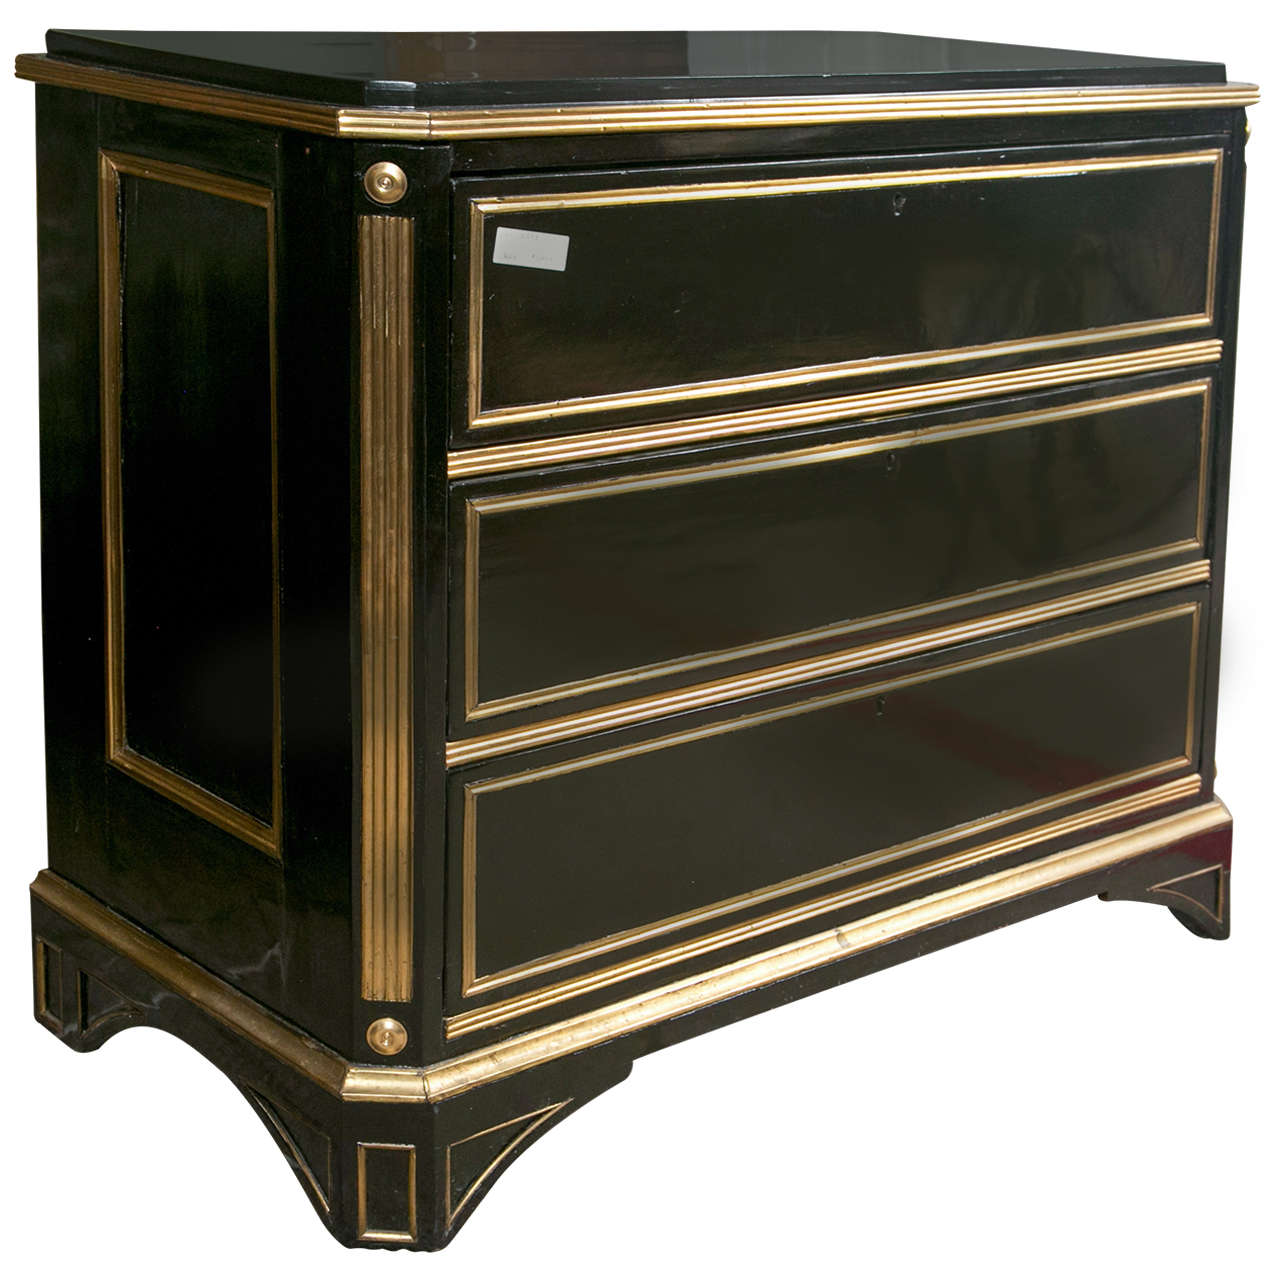 Russian Neoclassical Style Ebonized Commode / Chest of Drawers / Cabinet 19th C.